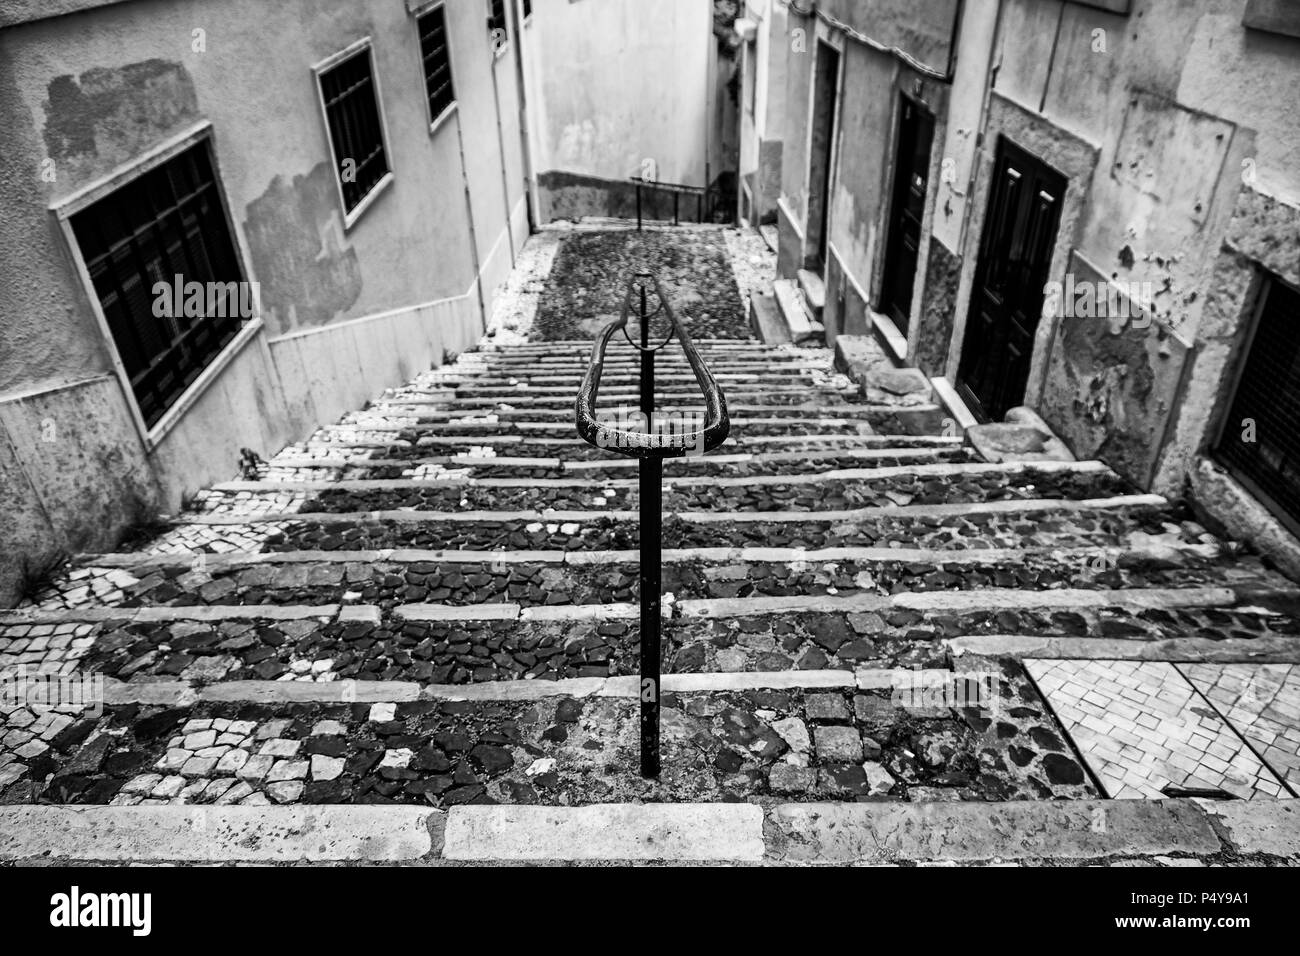 Old stone stairs in Lisbon, detail of stairs in an old street in an old neighborhood in Portugal - Stock Image